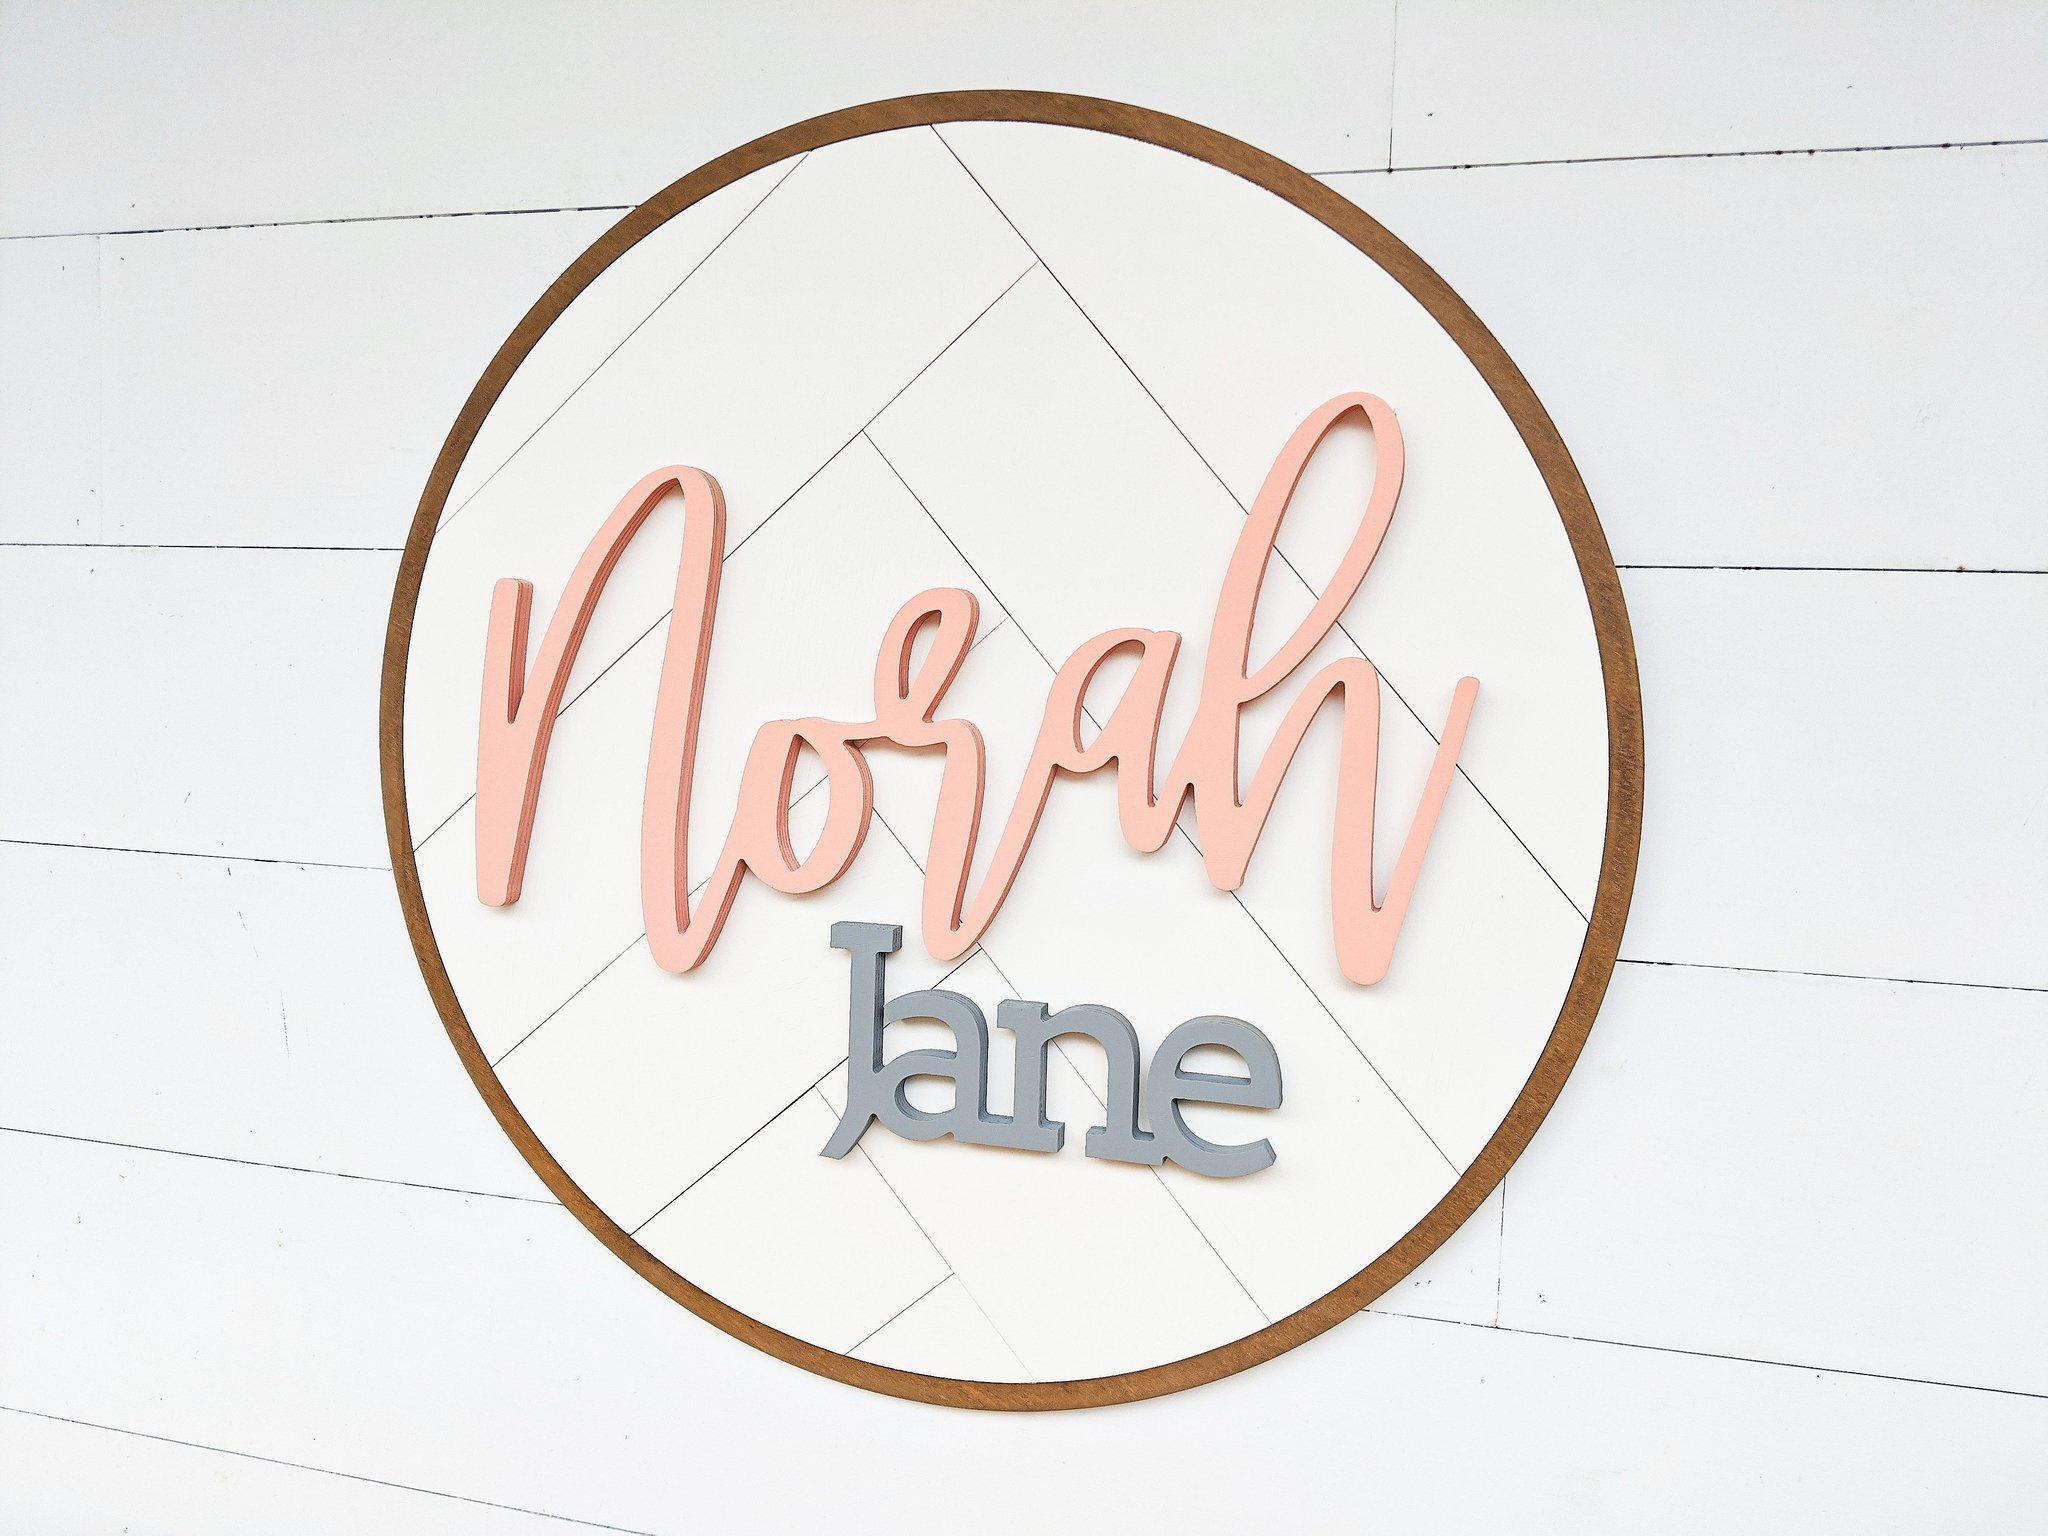 Name Sign - Norah Jane Style